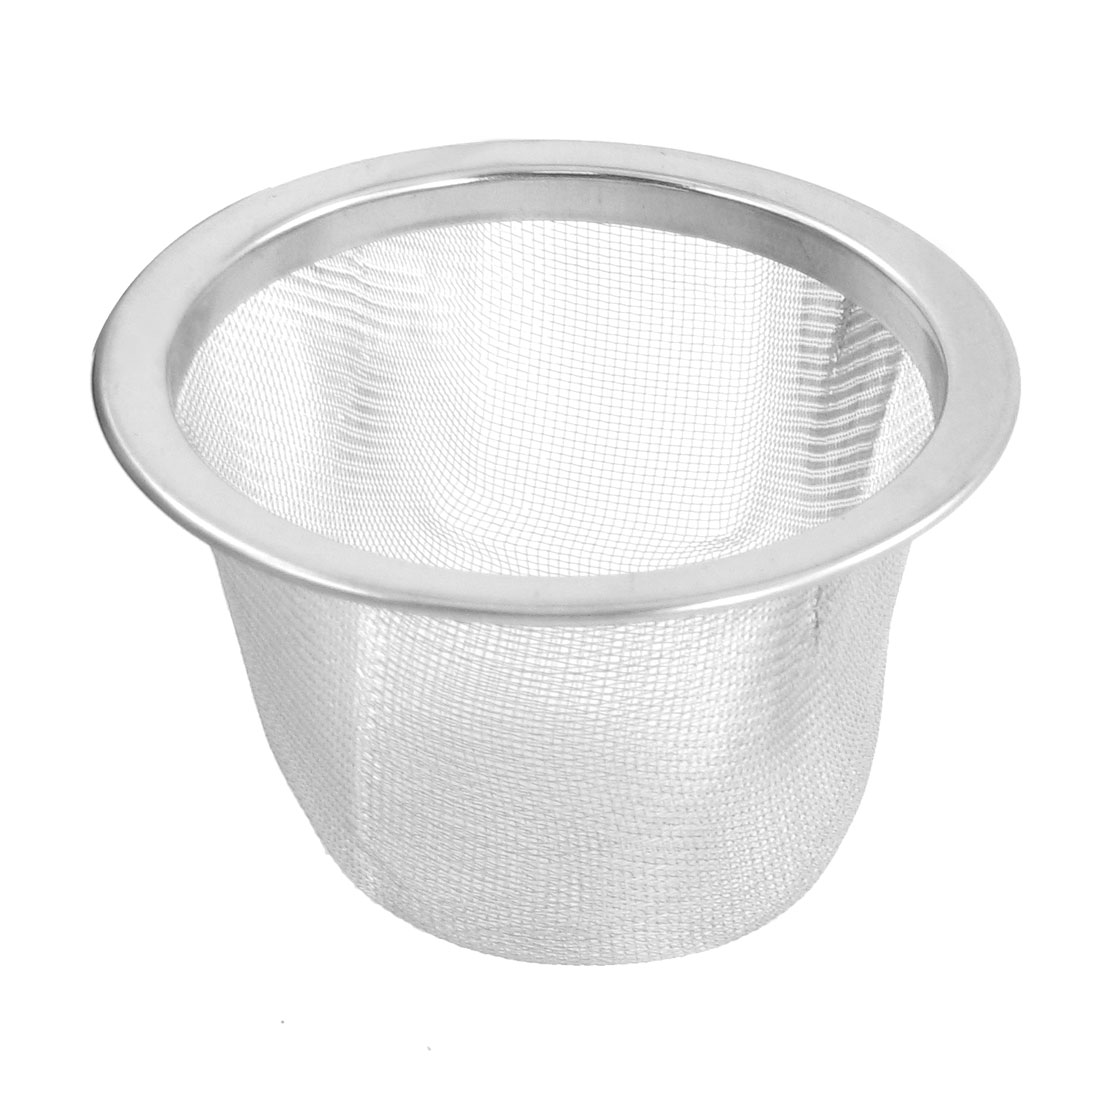 63mm Outer Dia Stainless Steel Mesh Tea Leaves Spice Strainer Basket